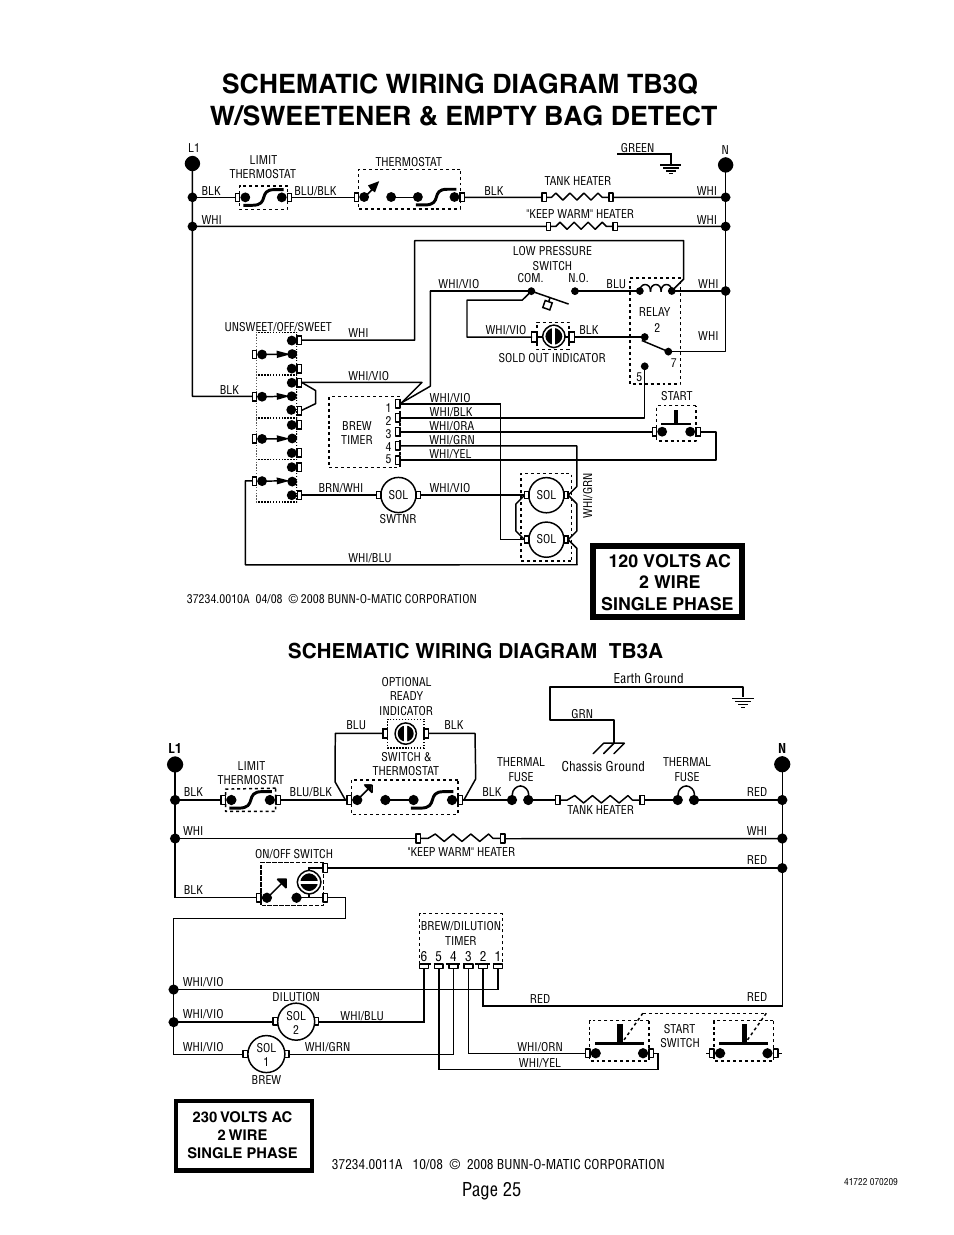 medium resolution of schematic wiring diagram tb3a page 25 120 volts ac 2 wire single phase bunn tb3q lp user manual page 25 27